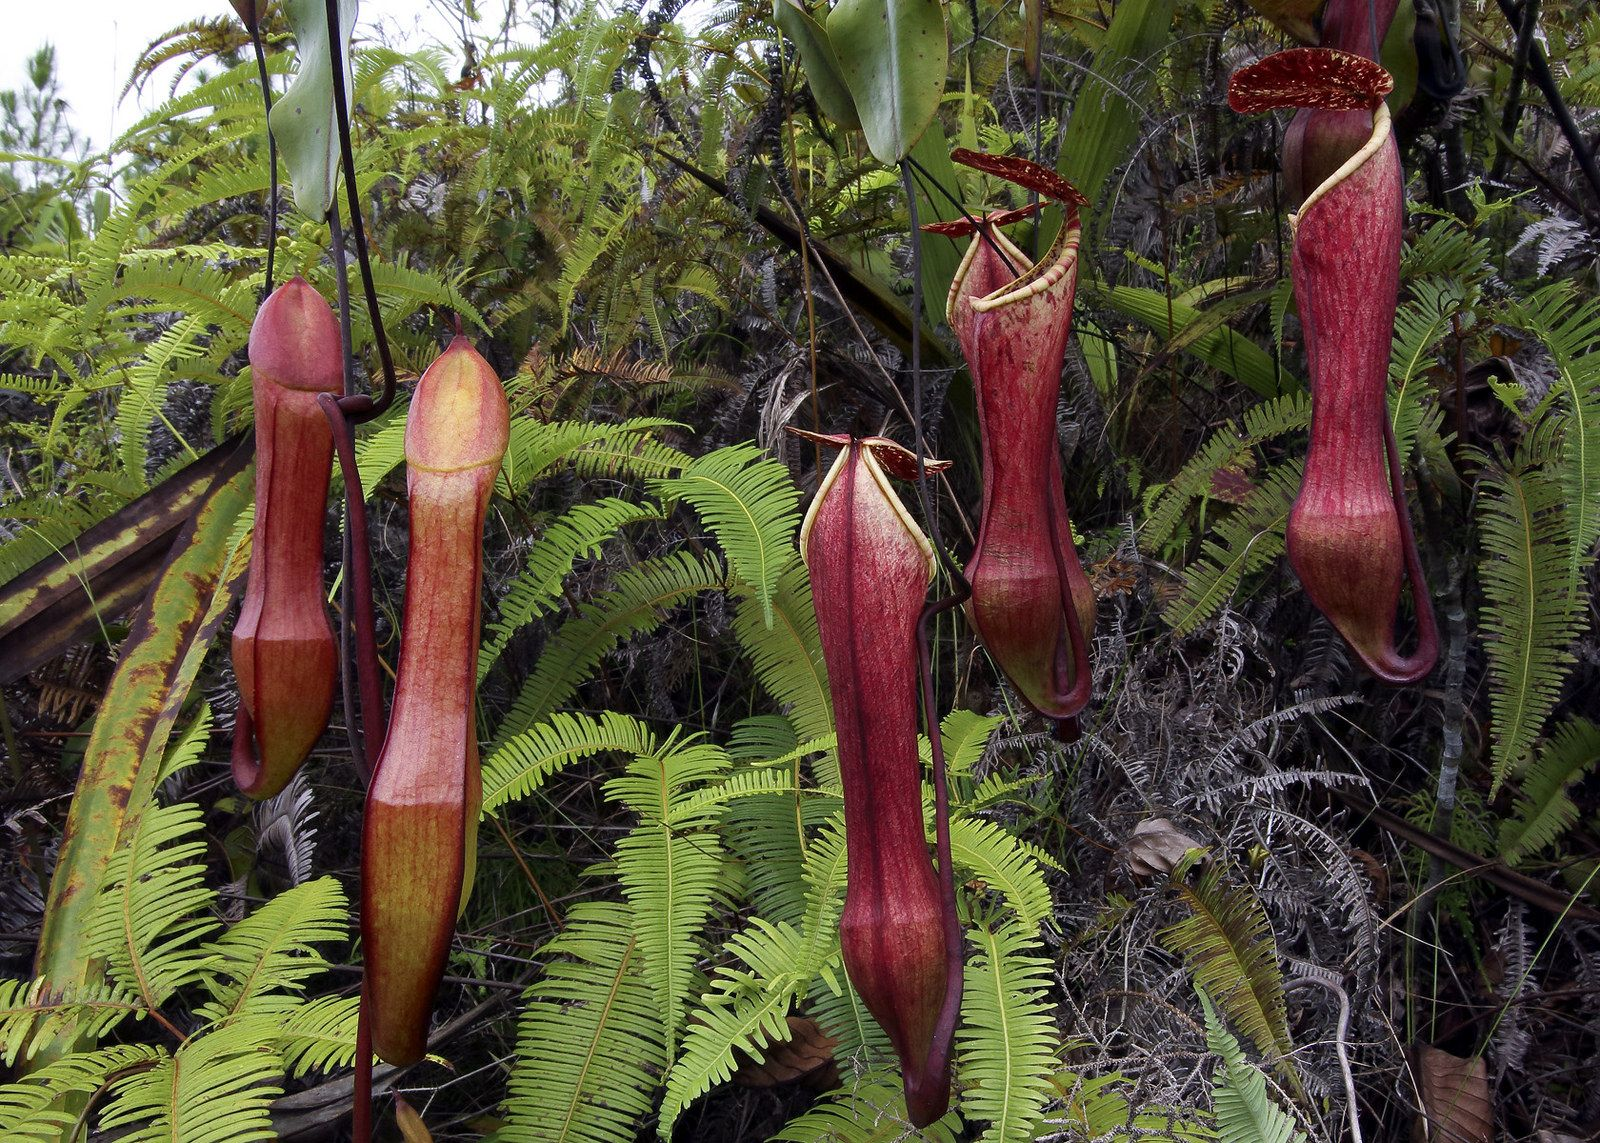 Nepenthes eustachya, Tropical Pitcher Plant in habitat